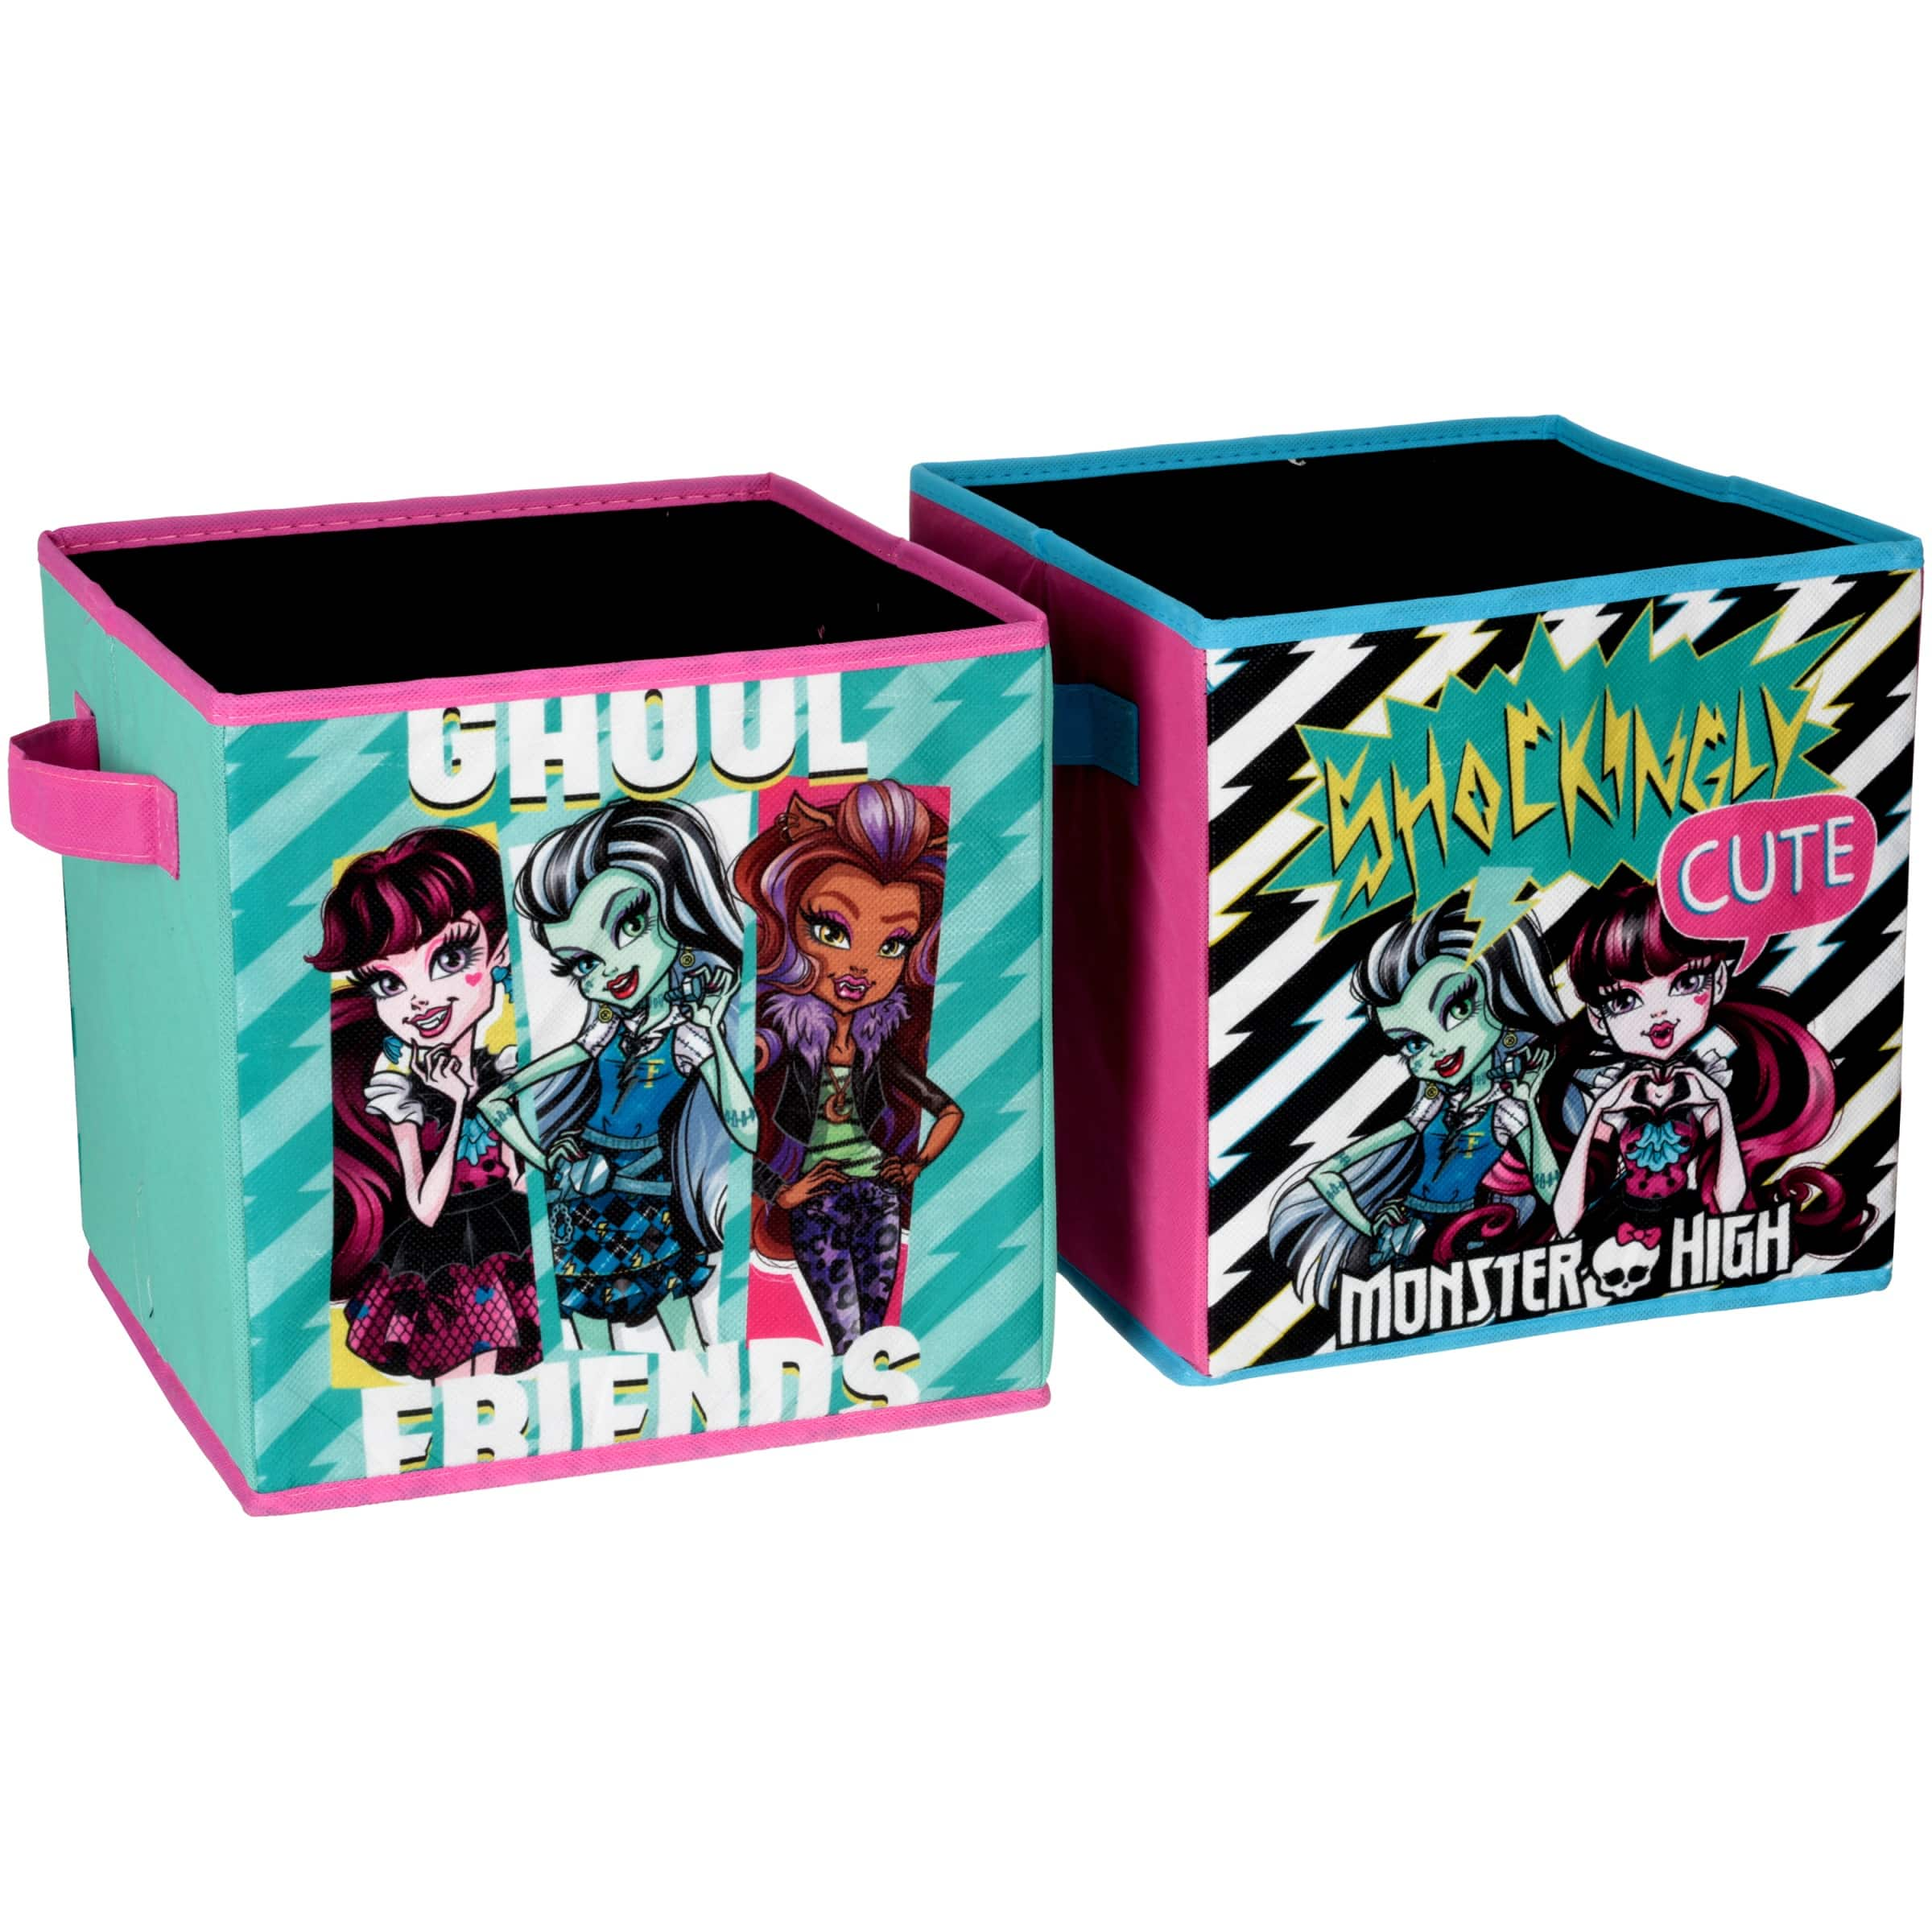 Set of 2 Monster High Kids Collapsible Storage Cubes $7 at Walmart + Free Store Pickup